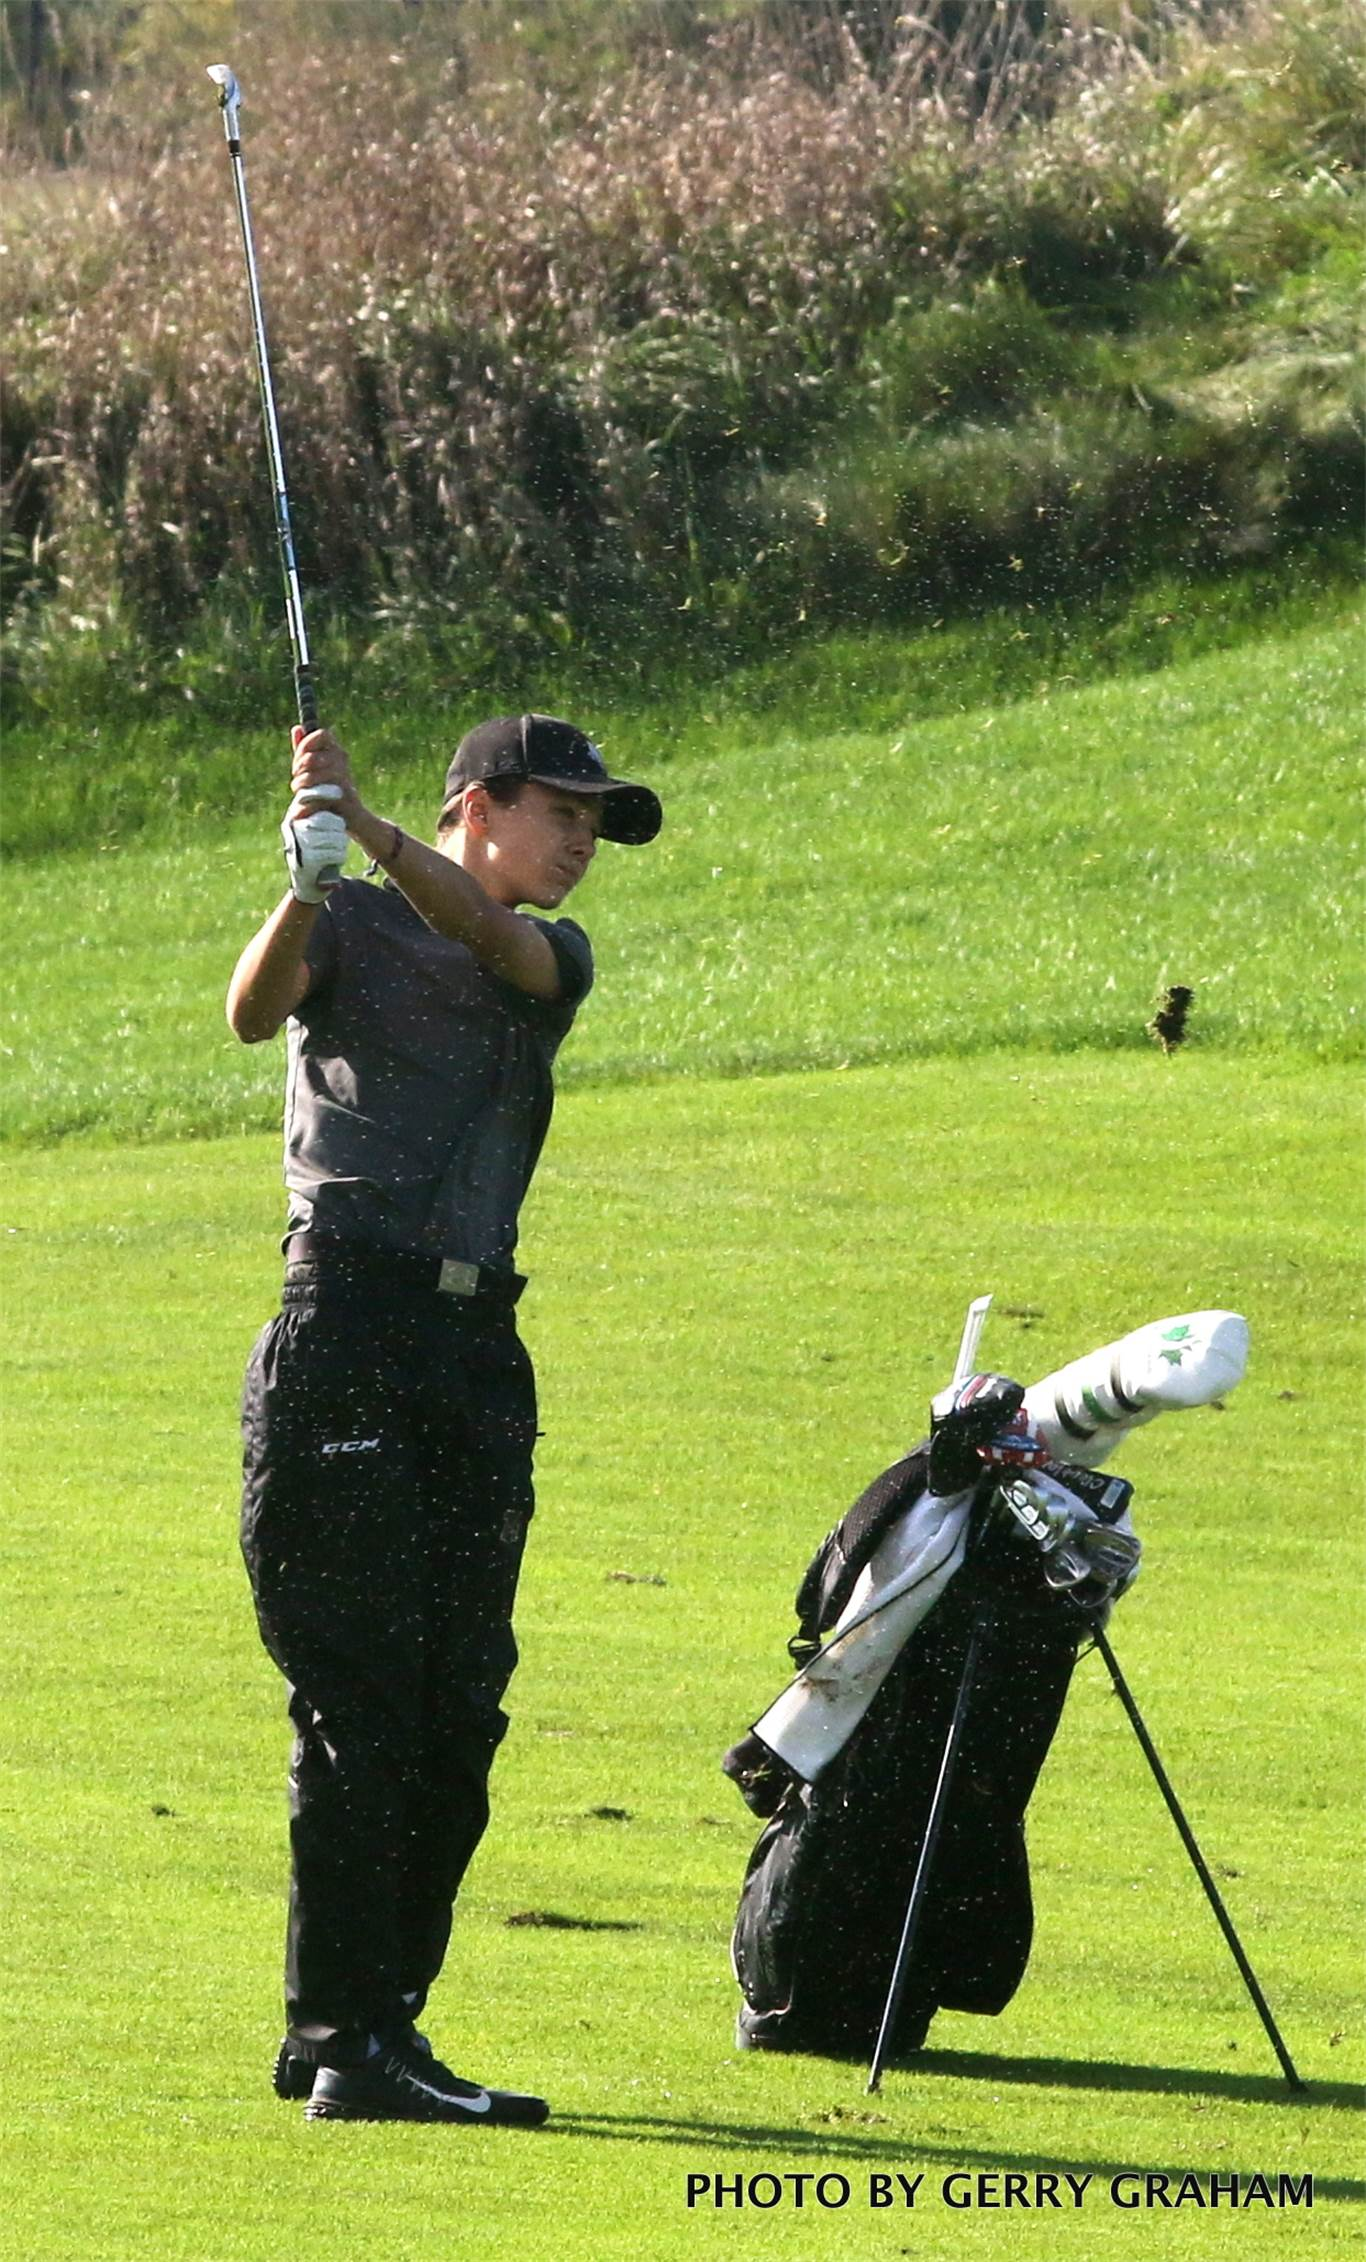 BT's Liam Mosher led the Titans with a 2-over 74 after the first round of the OFSAA boys' golf championship on Oct 10. Individually, he's tied for 14th place. Photo by Gerry Graham.